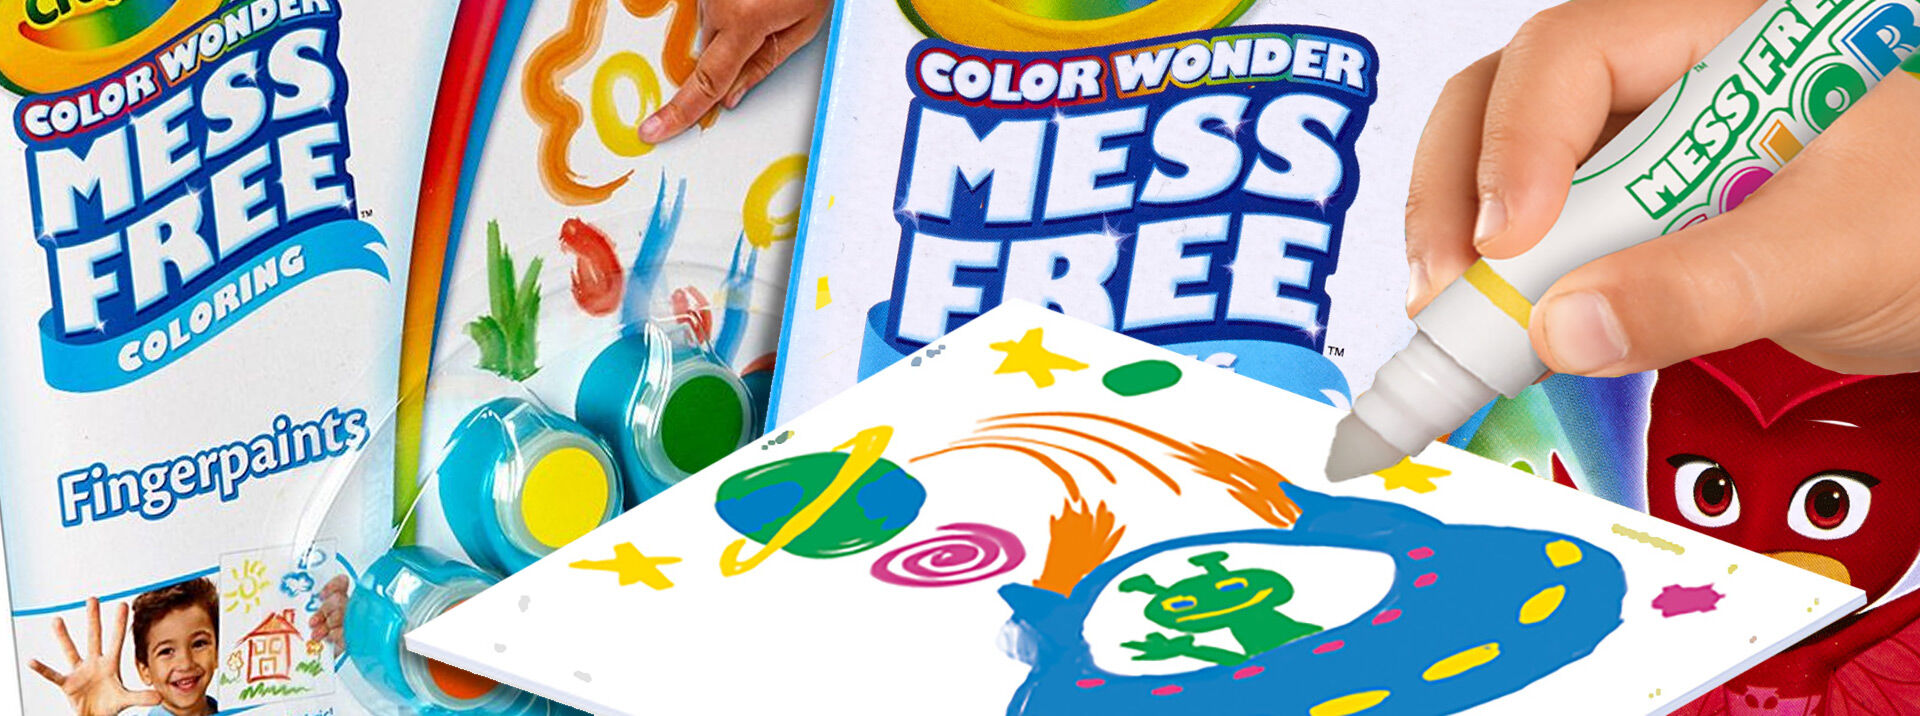 Crayola Color Wonder Mess Free Coloring